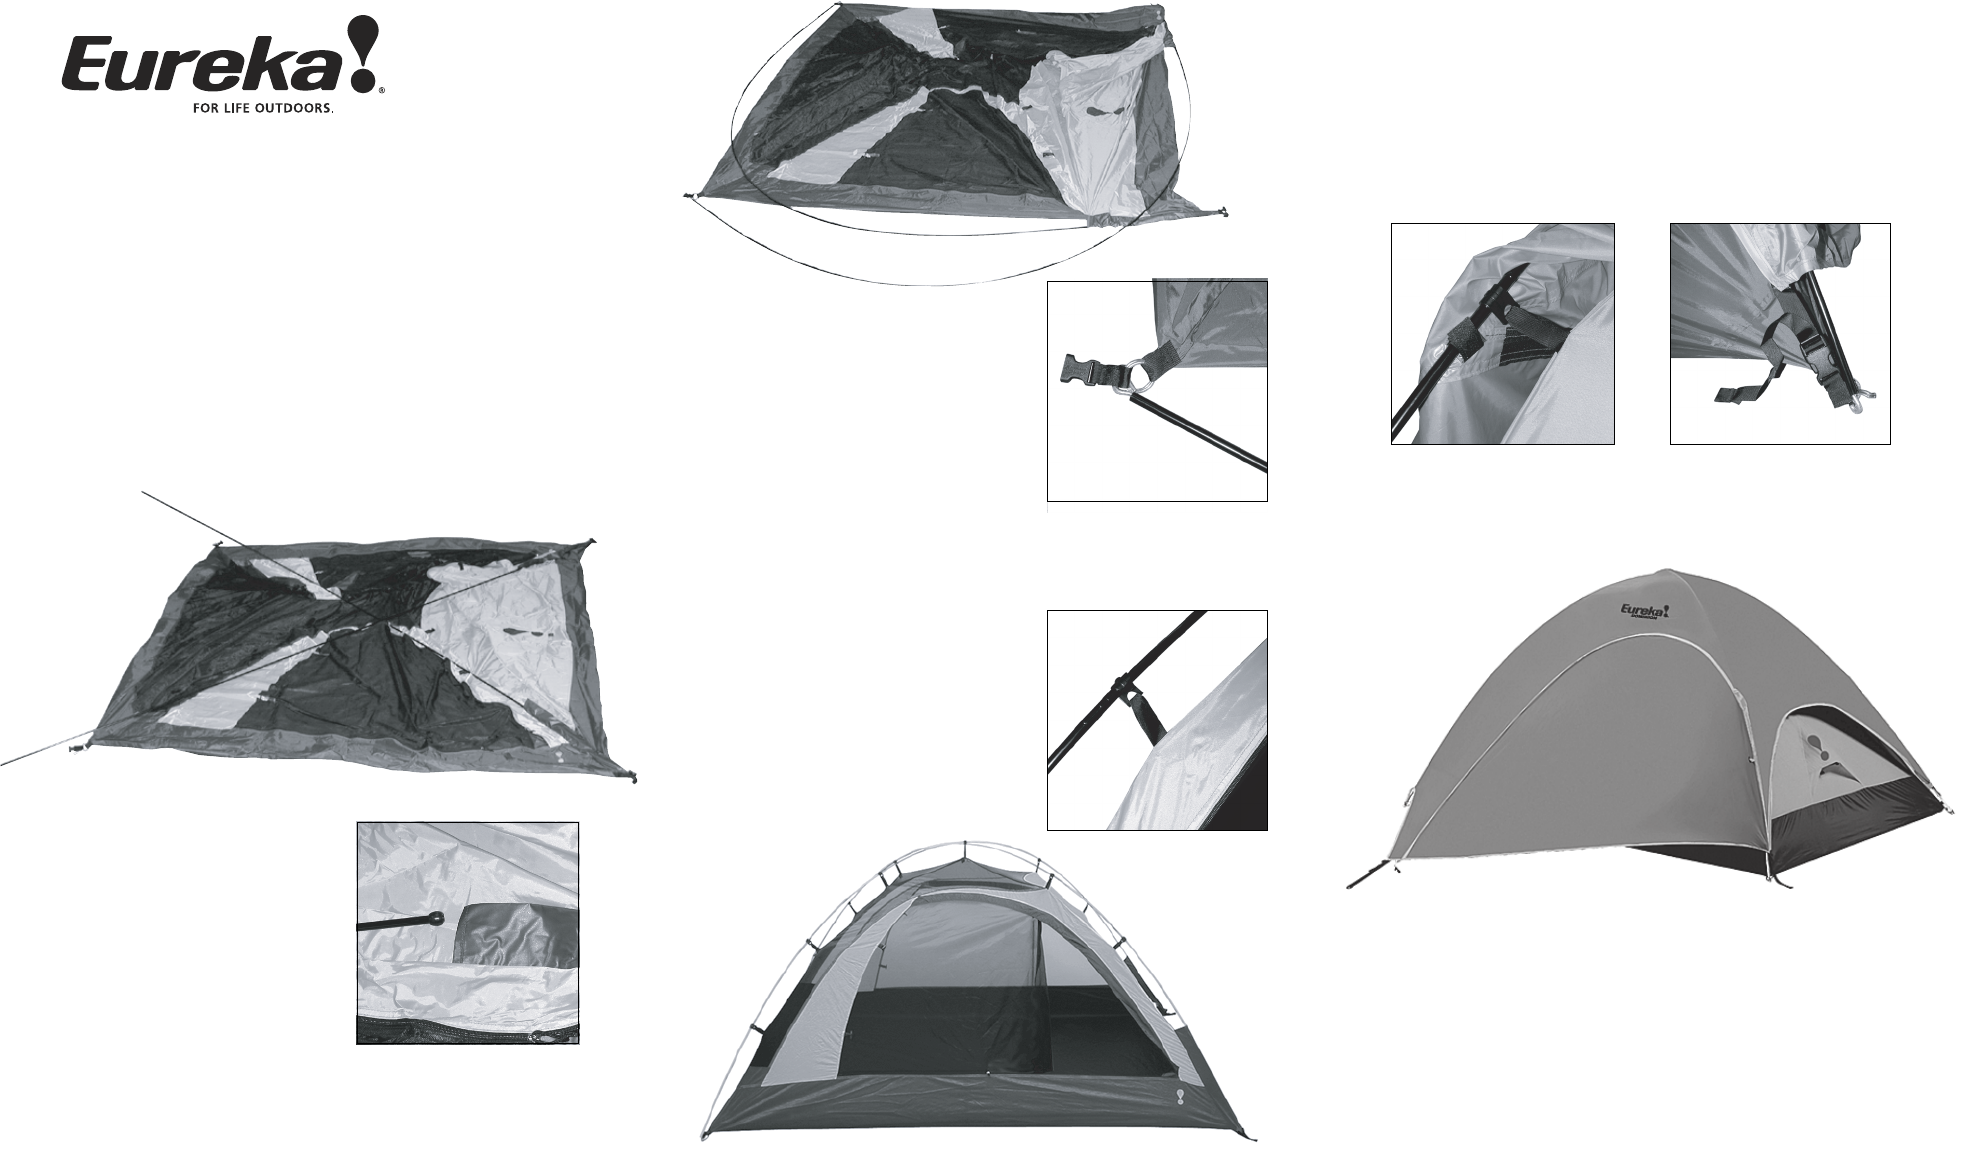 Eureka! Tents Dominion Tent User Manual  sc 1 st  Fitness u0026 Sports - ManualsOnline.com & Eureka! Tents Tent Dominion User Guide | ManualsOnline.com